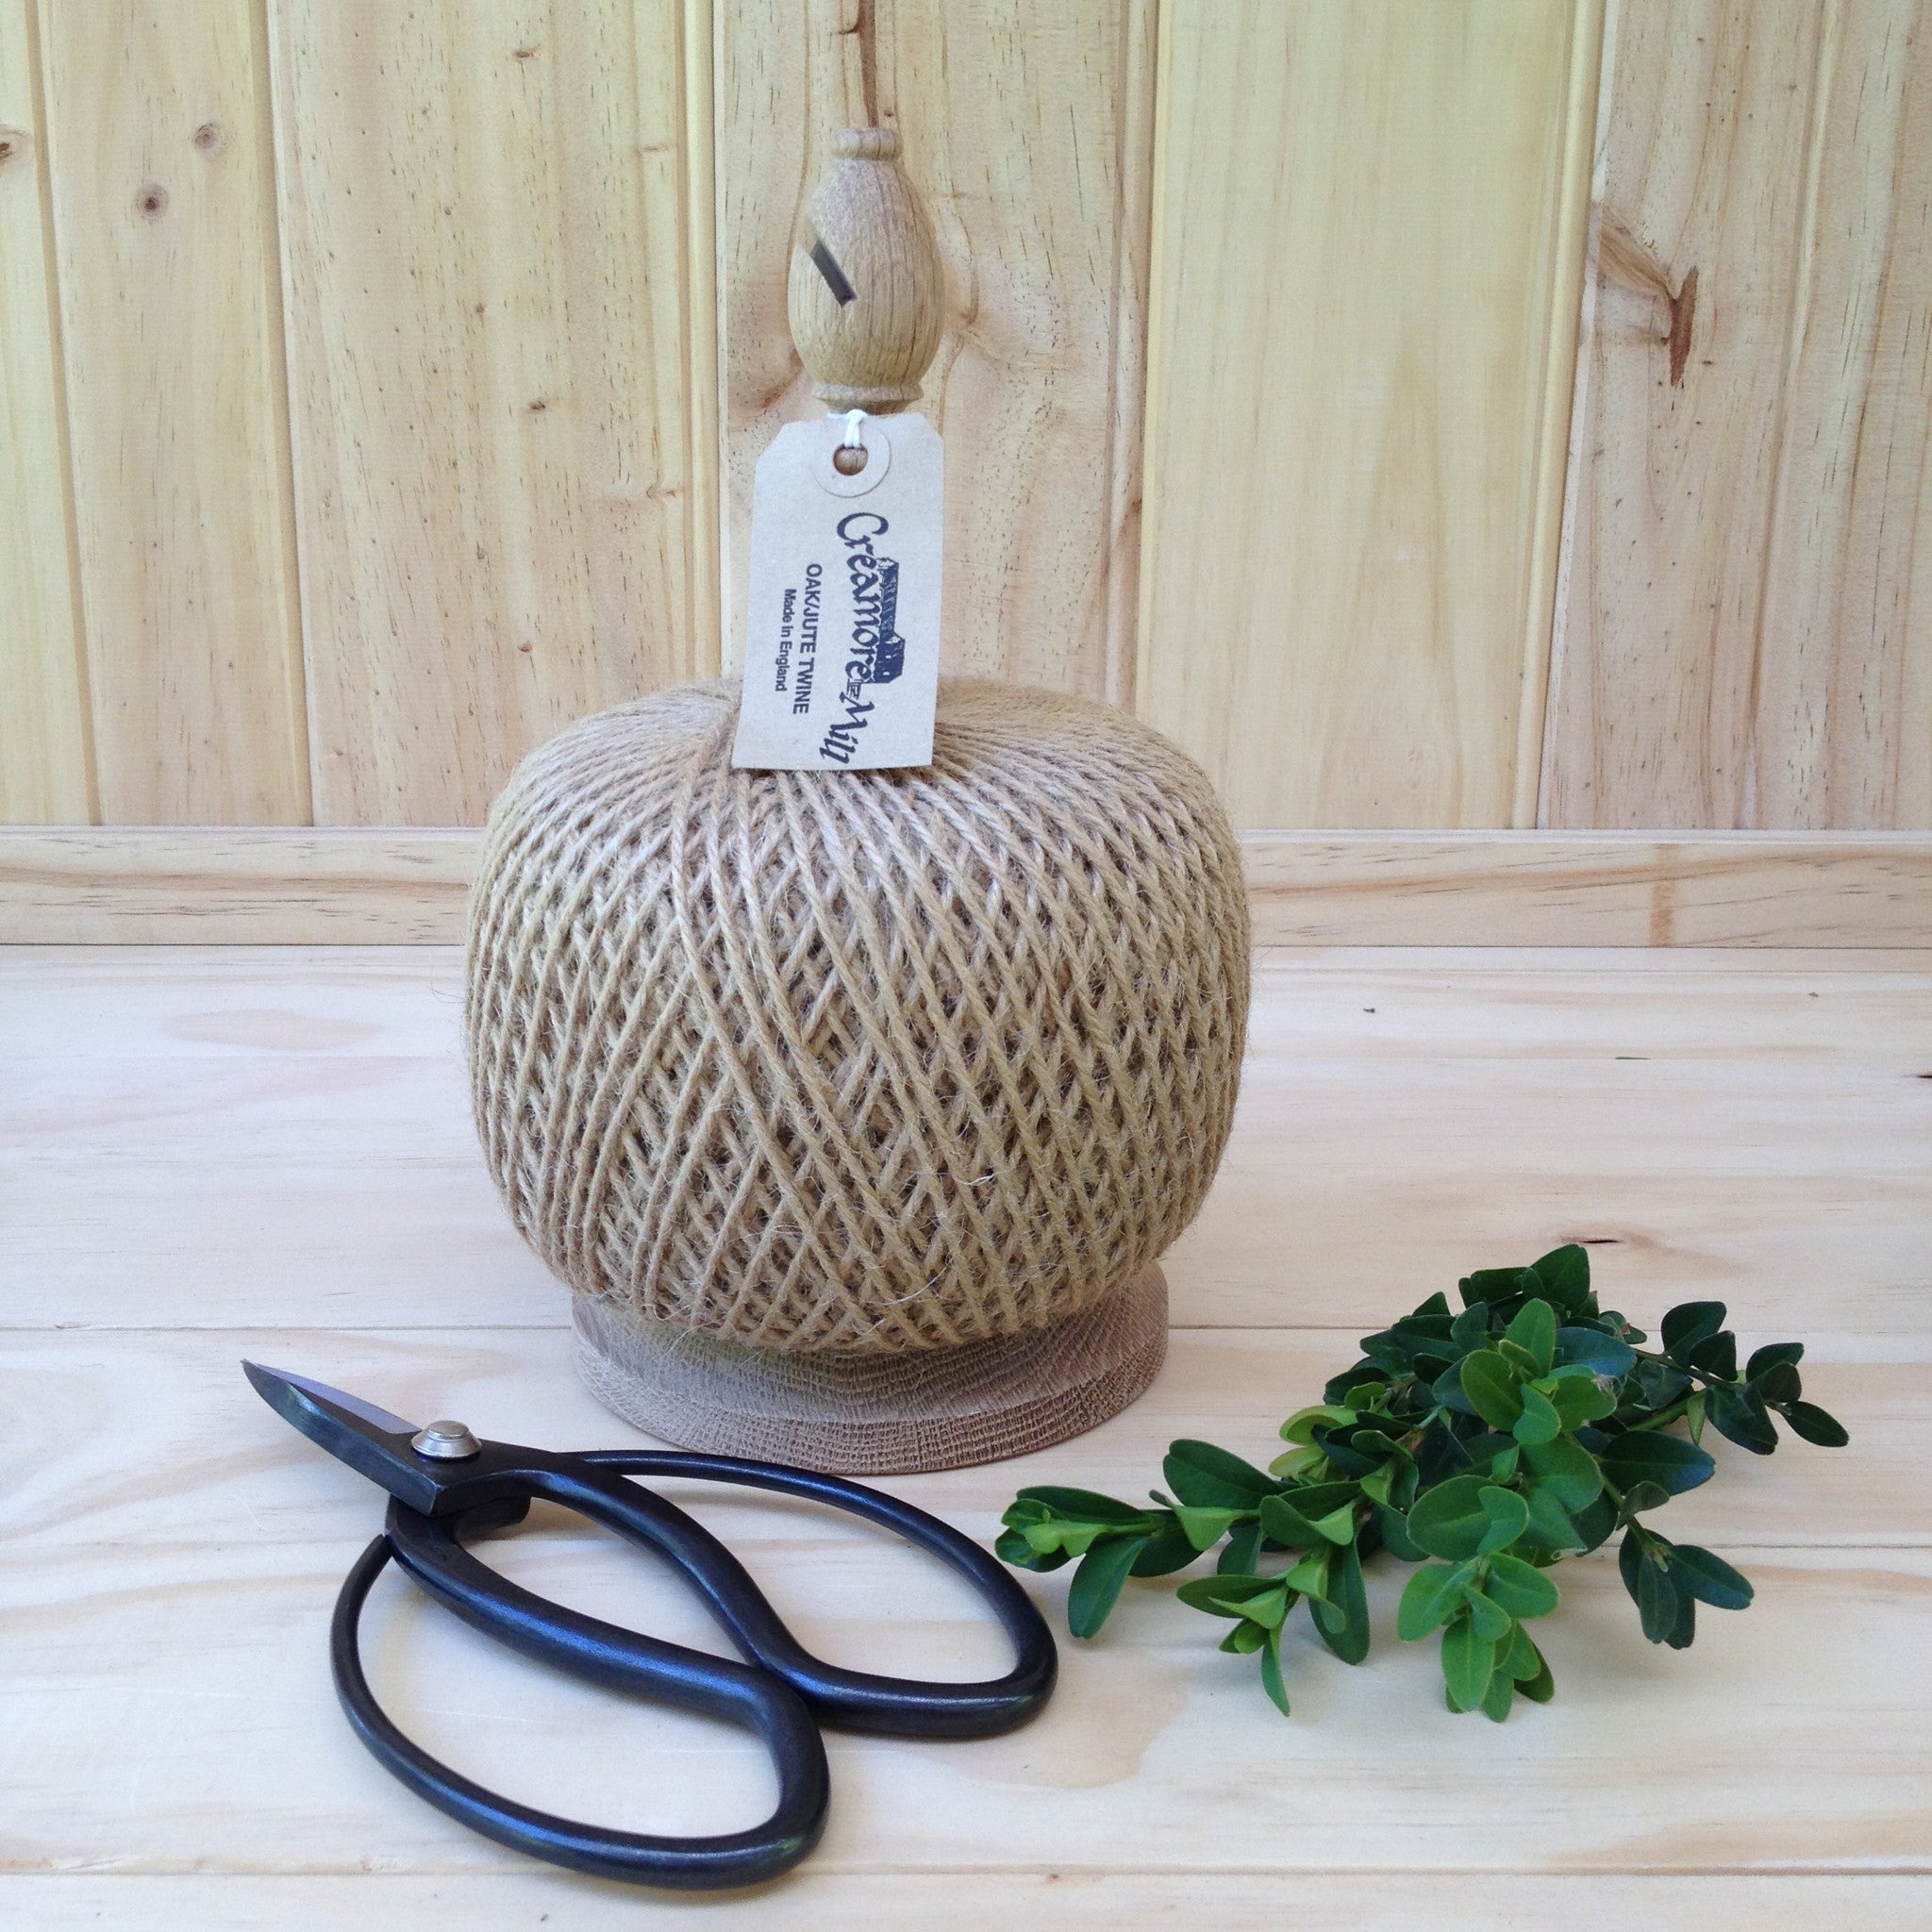 Twine Stand with Cutter - The Potting Shed Garden Tools